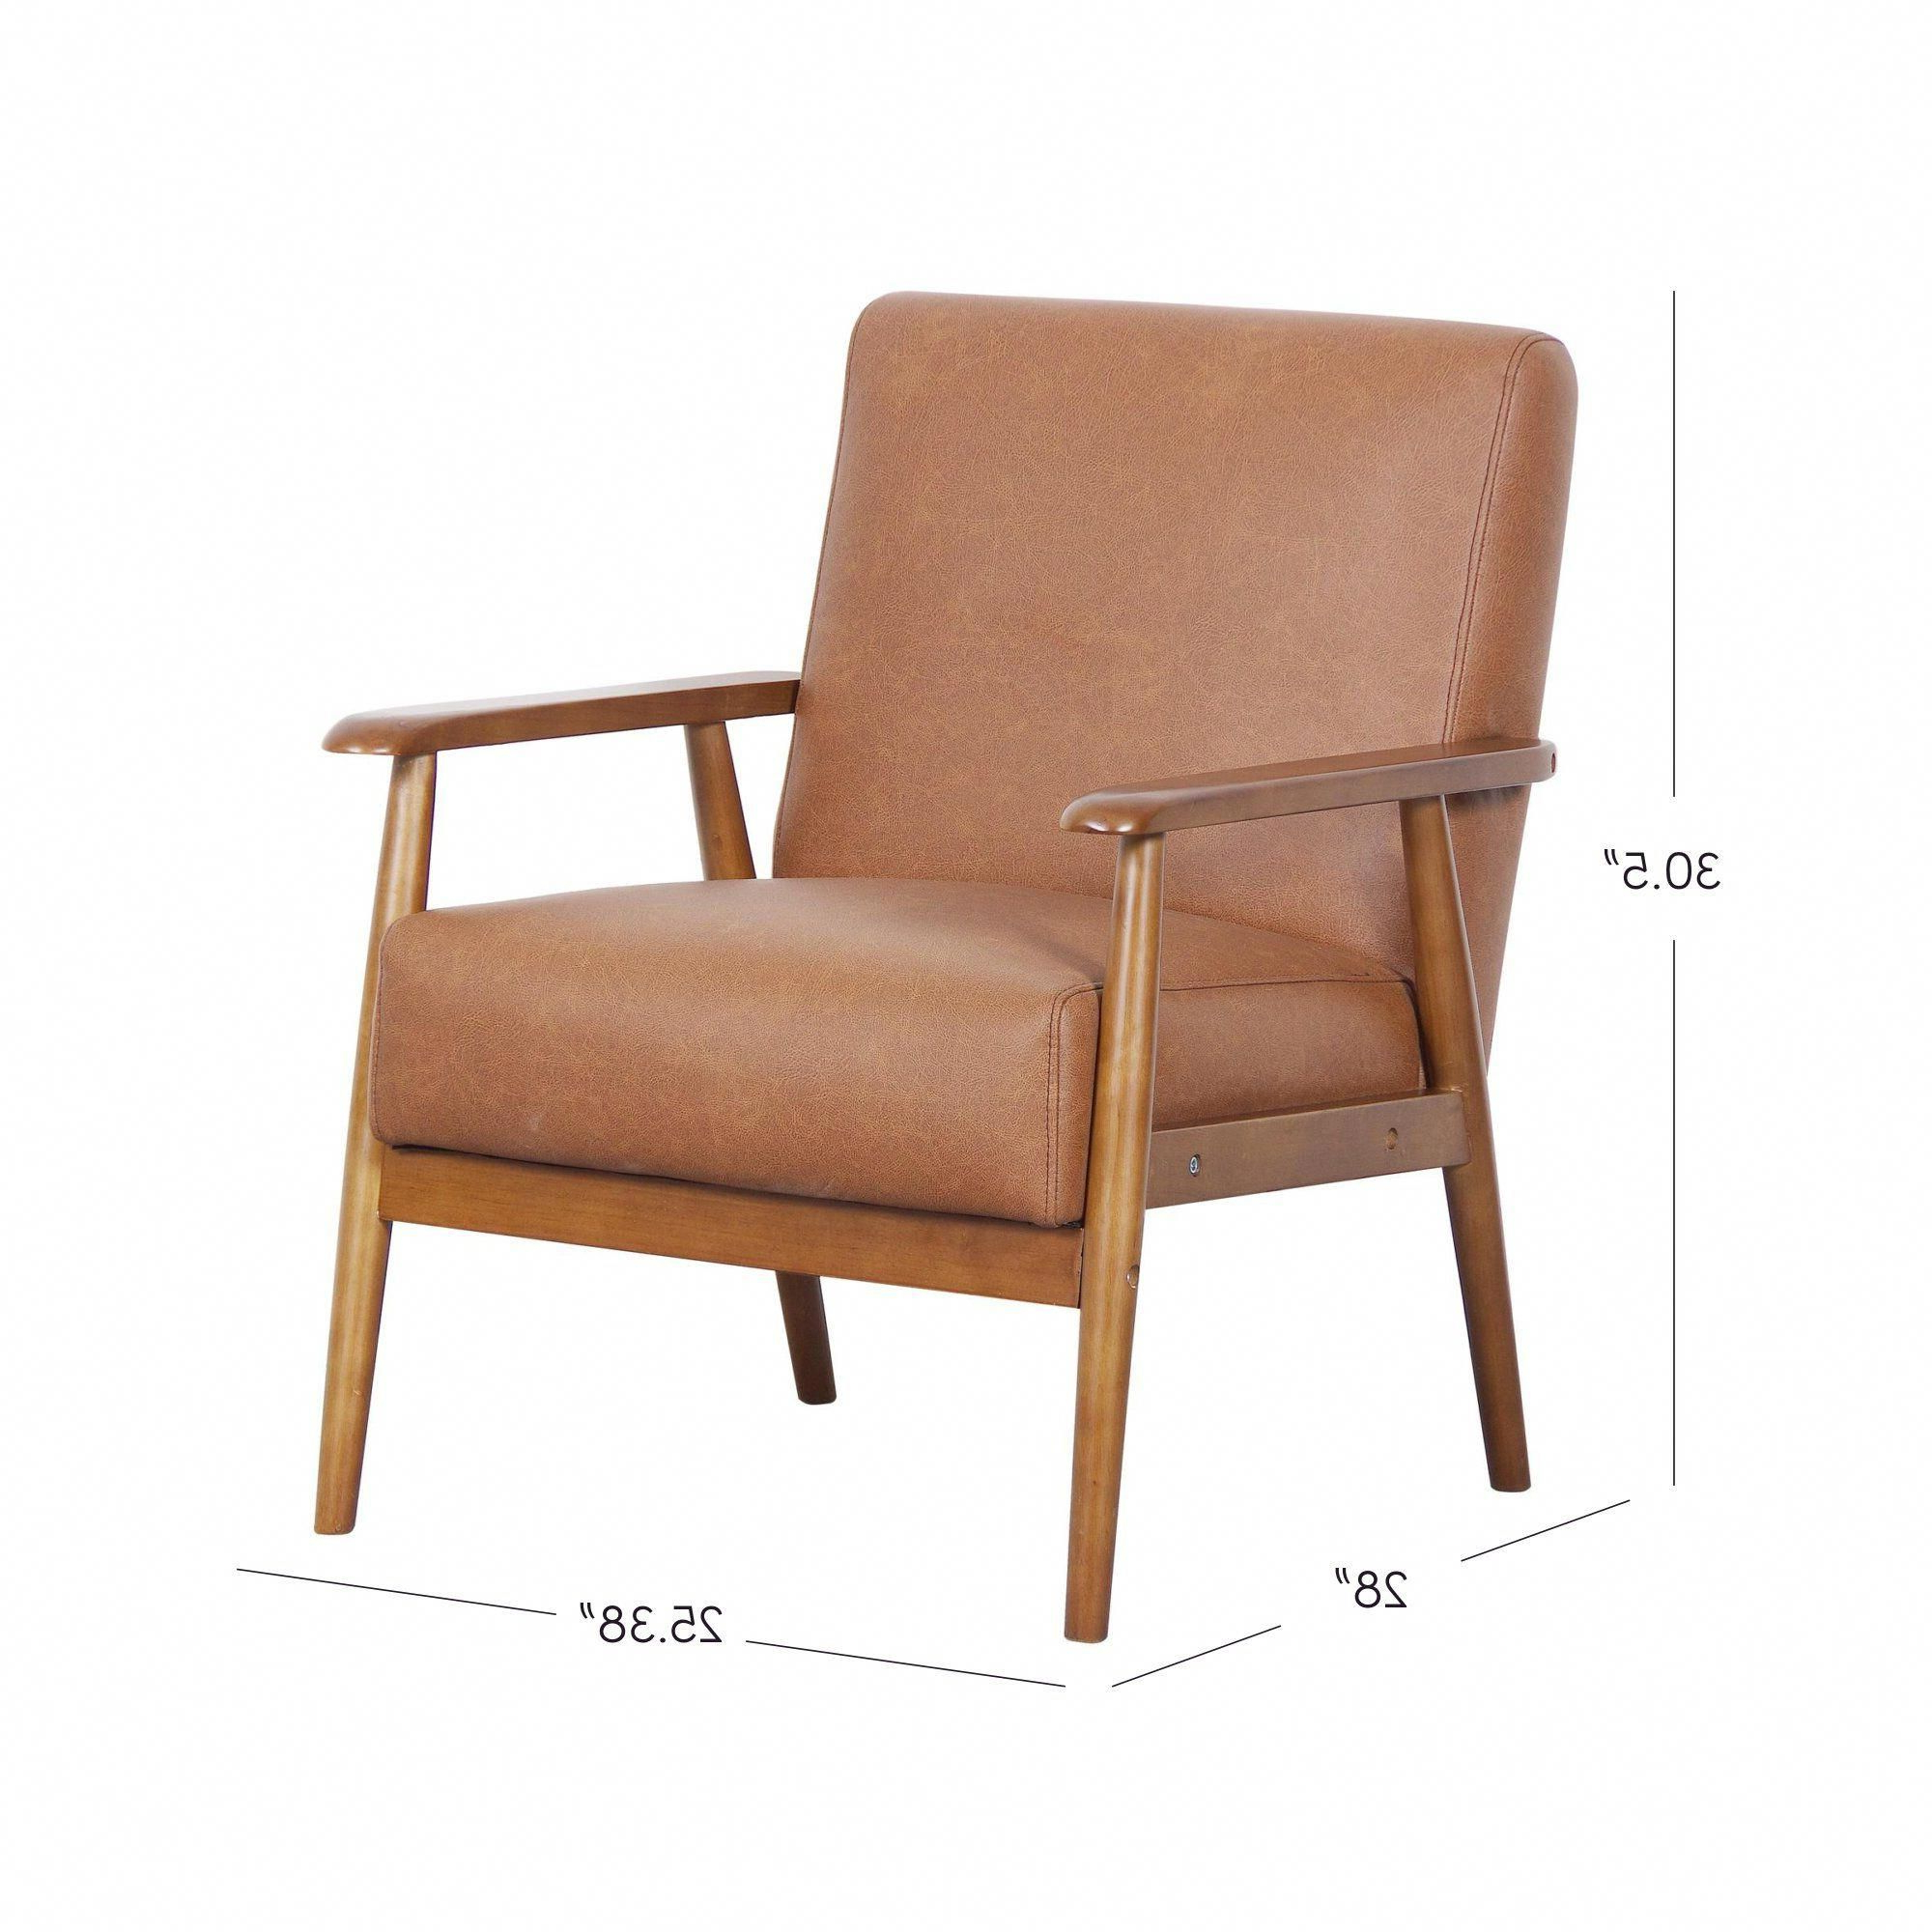 Faux Leather Chair, Armchair, Leather Chair Throughout Most Current Jarin Faux Leather Armchairs (View 4 of 20)